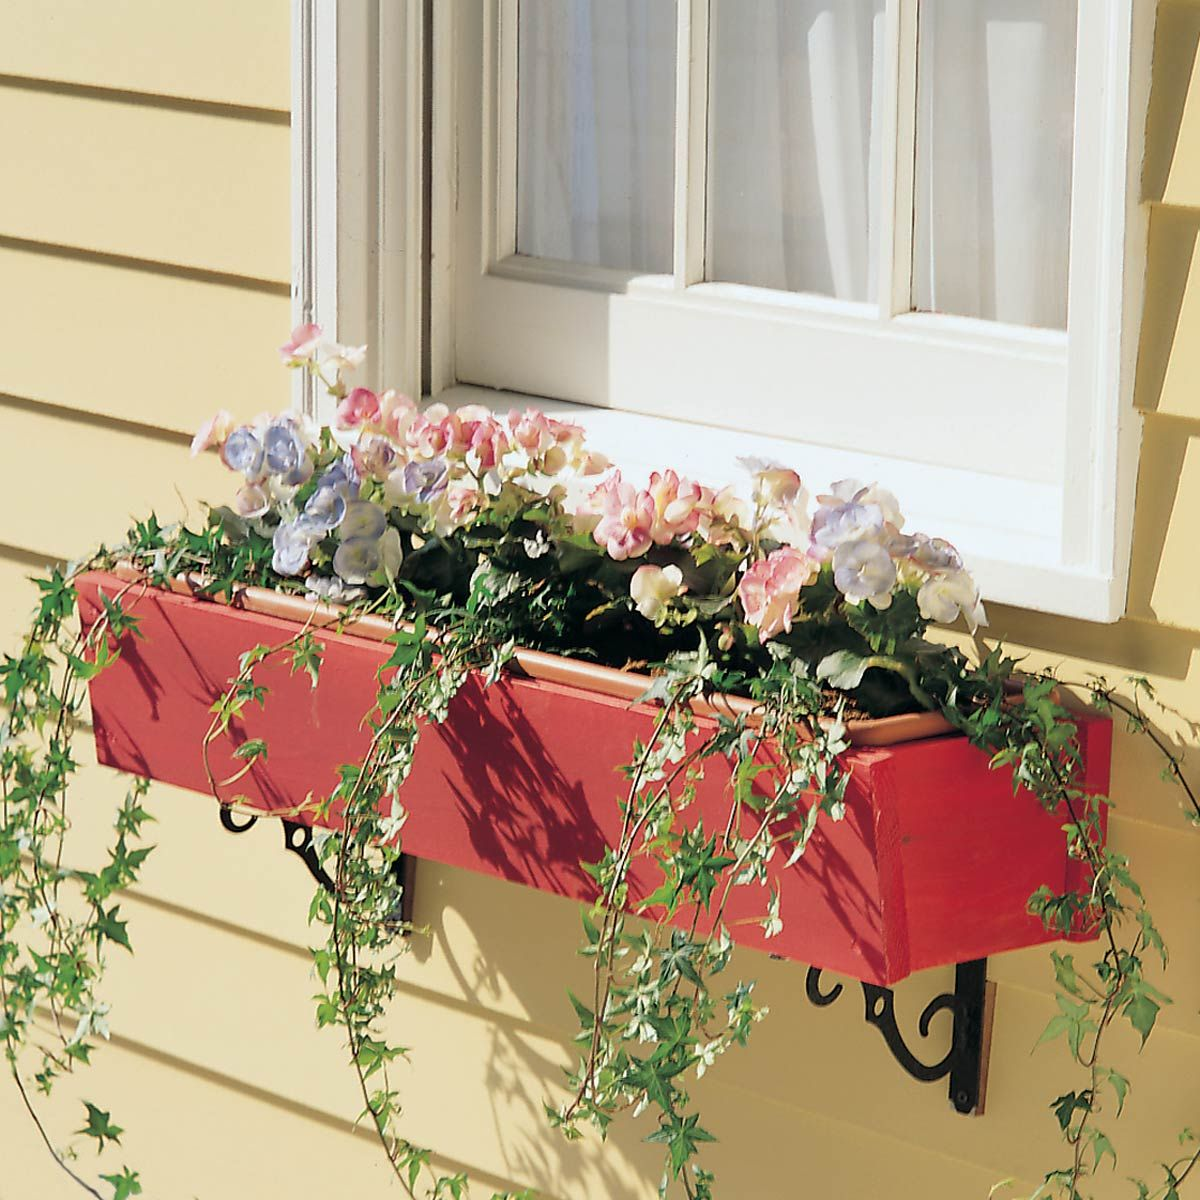 How to Make a Window Box That is RotResistant Wood